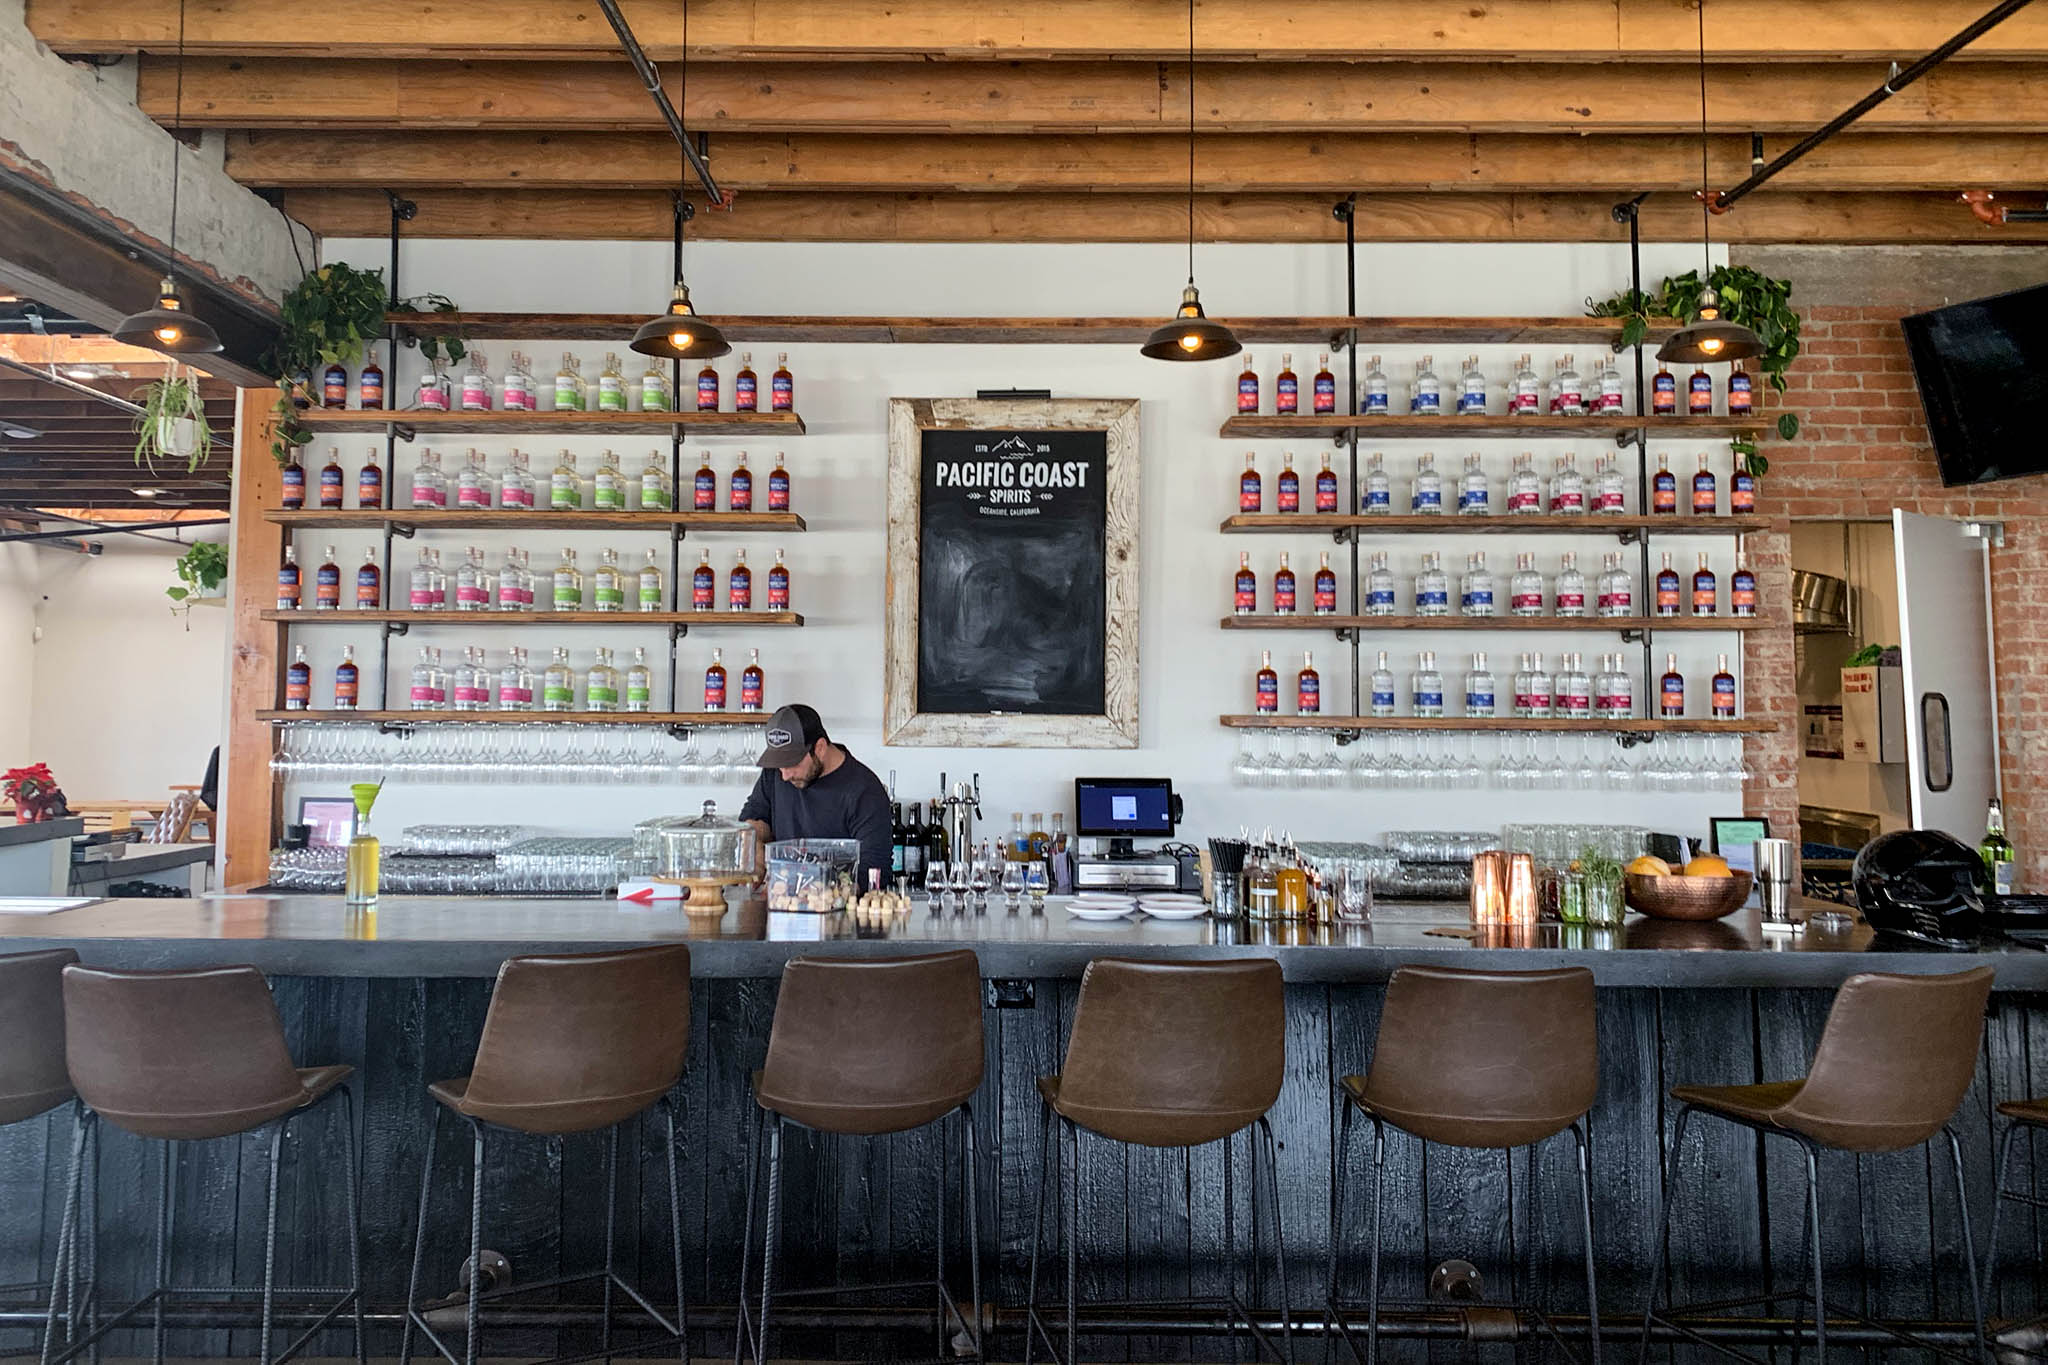 The ambitious Pacific Coast Spirits brings urban distilling to Oceanside